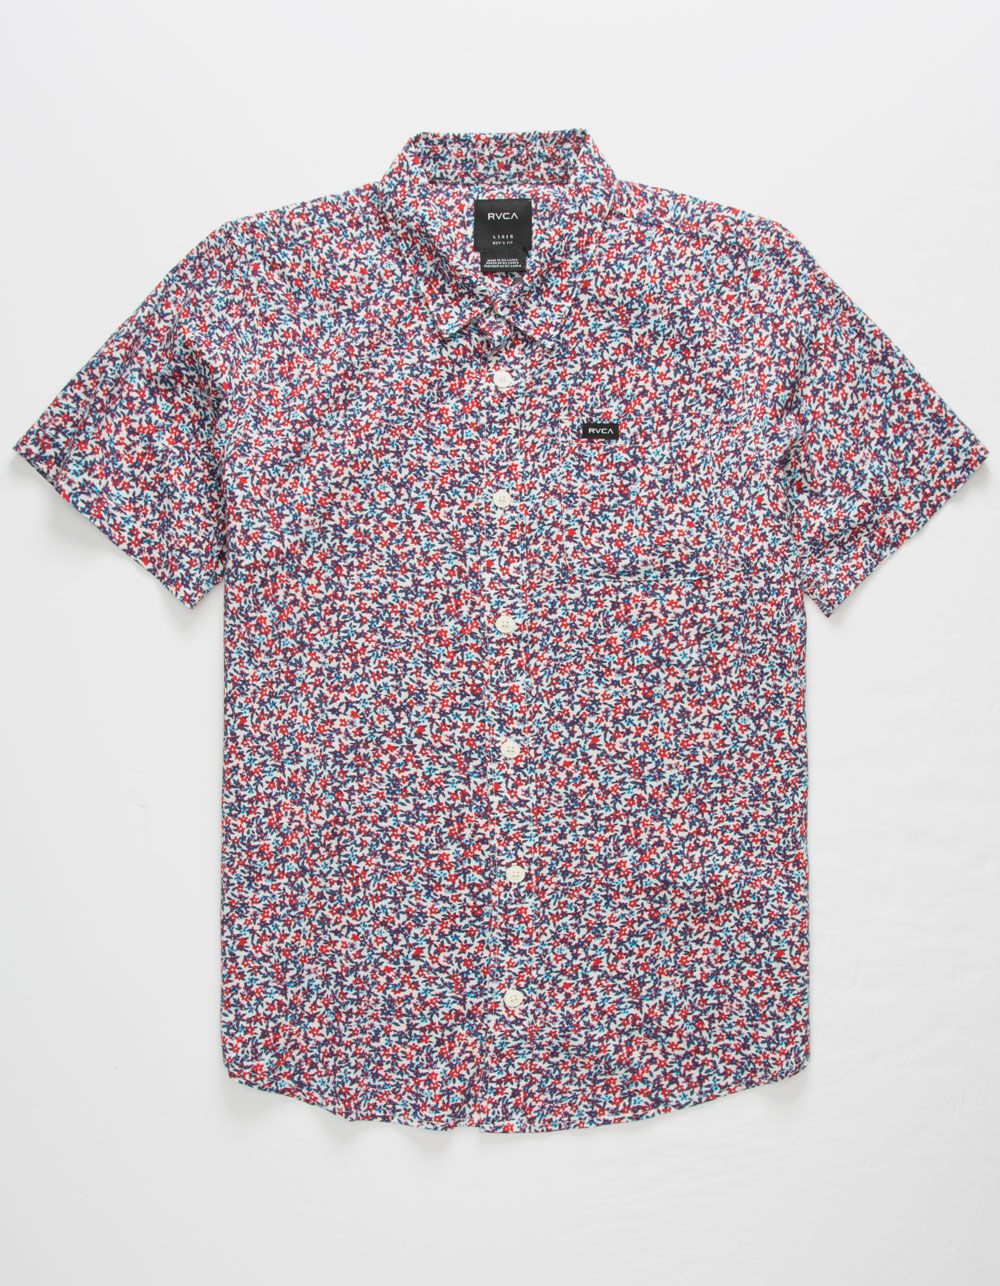 RVCA Revivalist Floral Boys Shirt